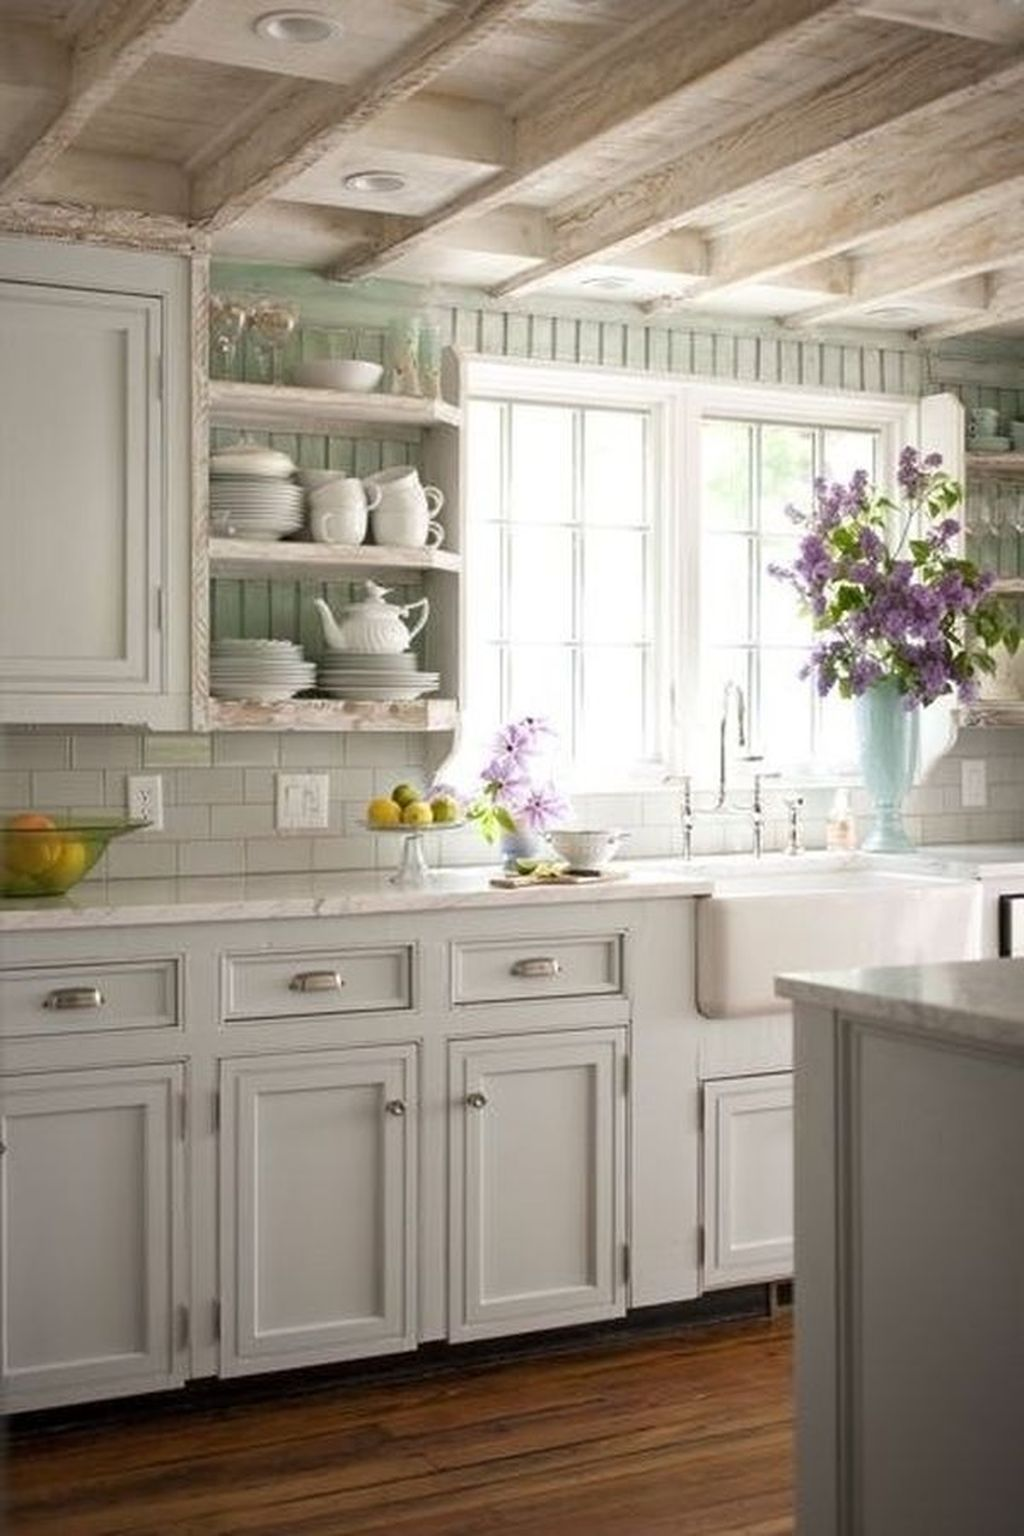 Shabby Chic Cucine Pin By Kathi Ruiz On Kitchen Cucina Shabby Chic Cucine In Stile